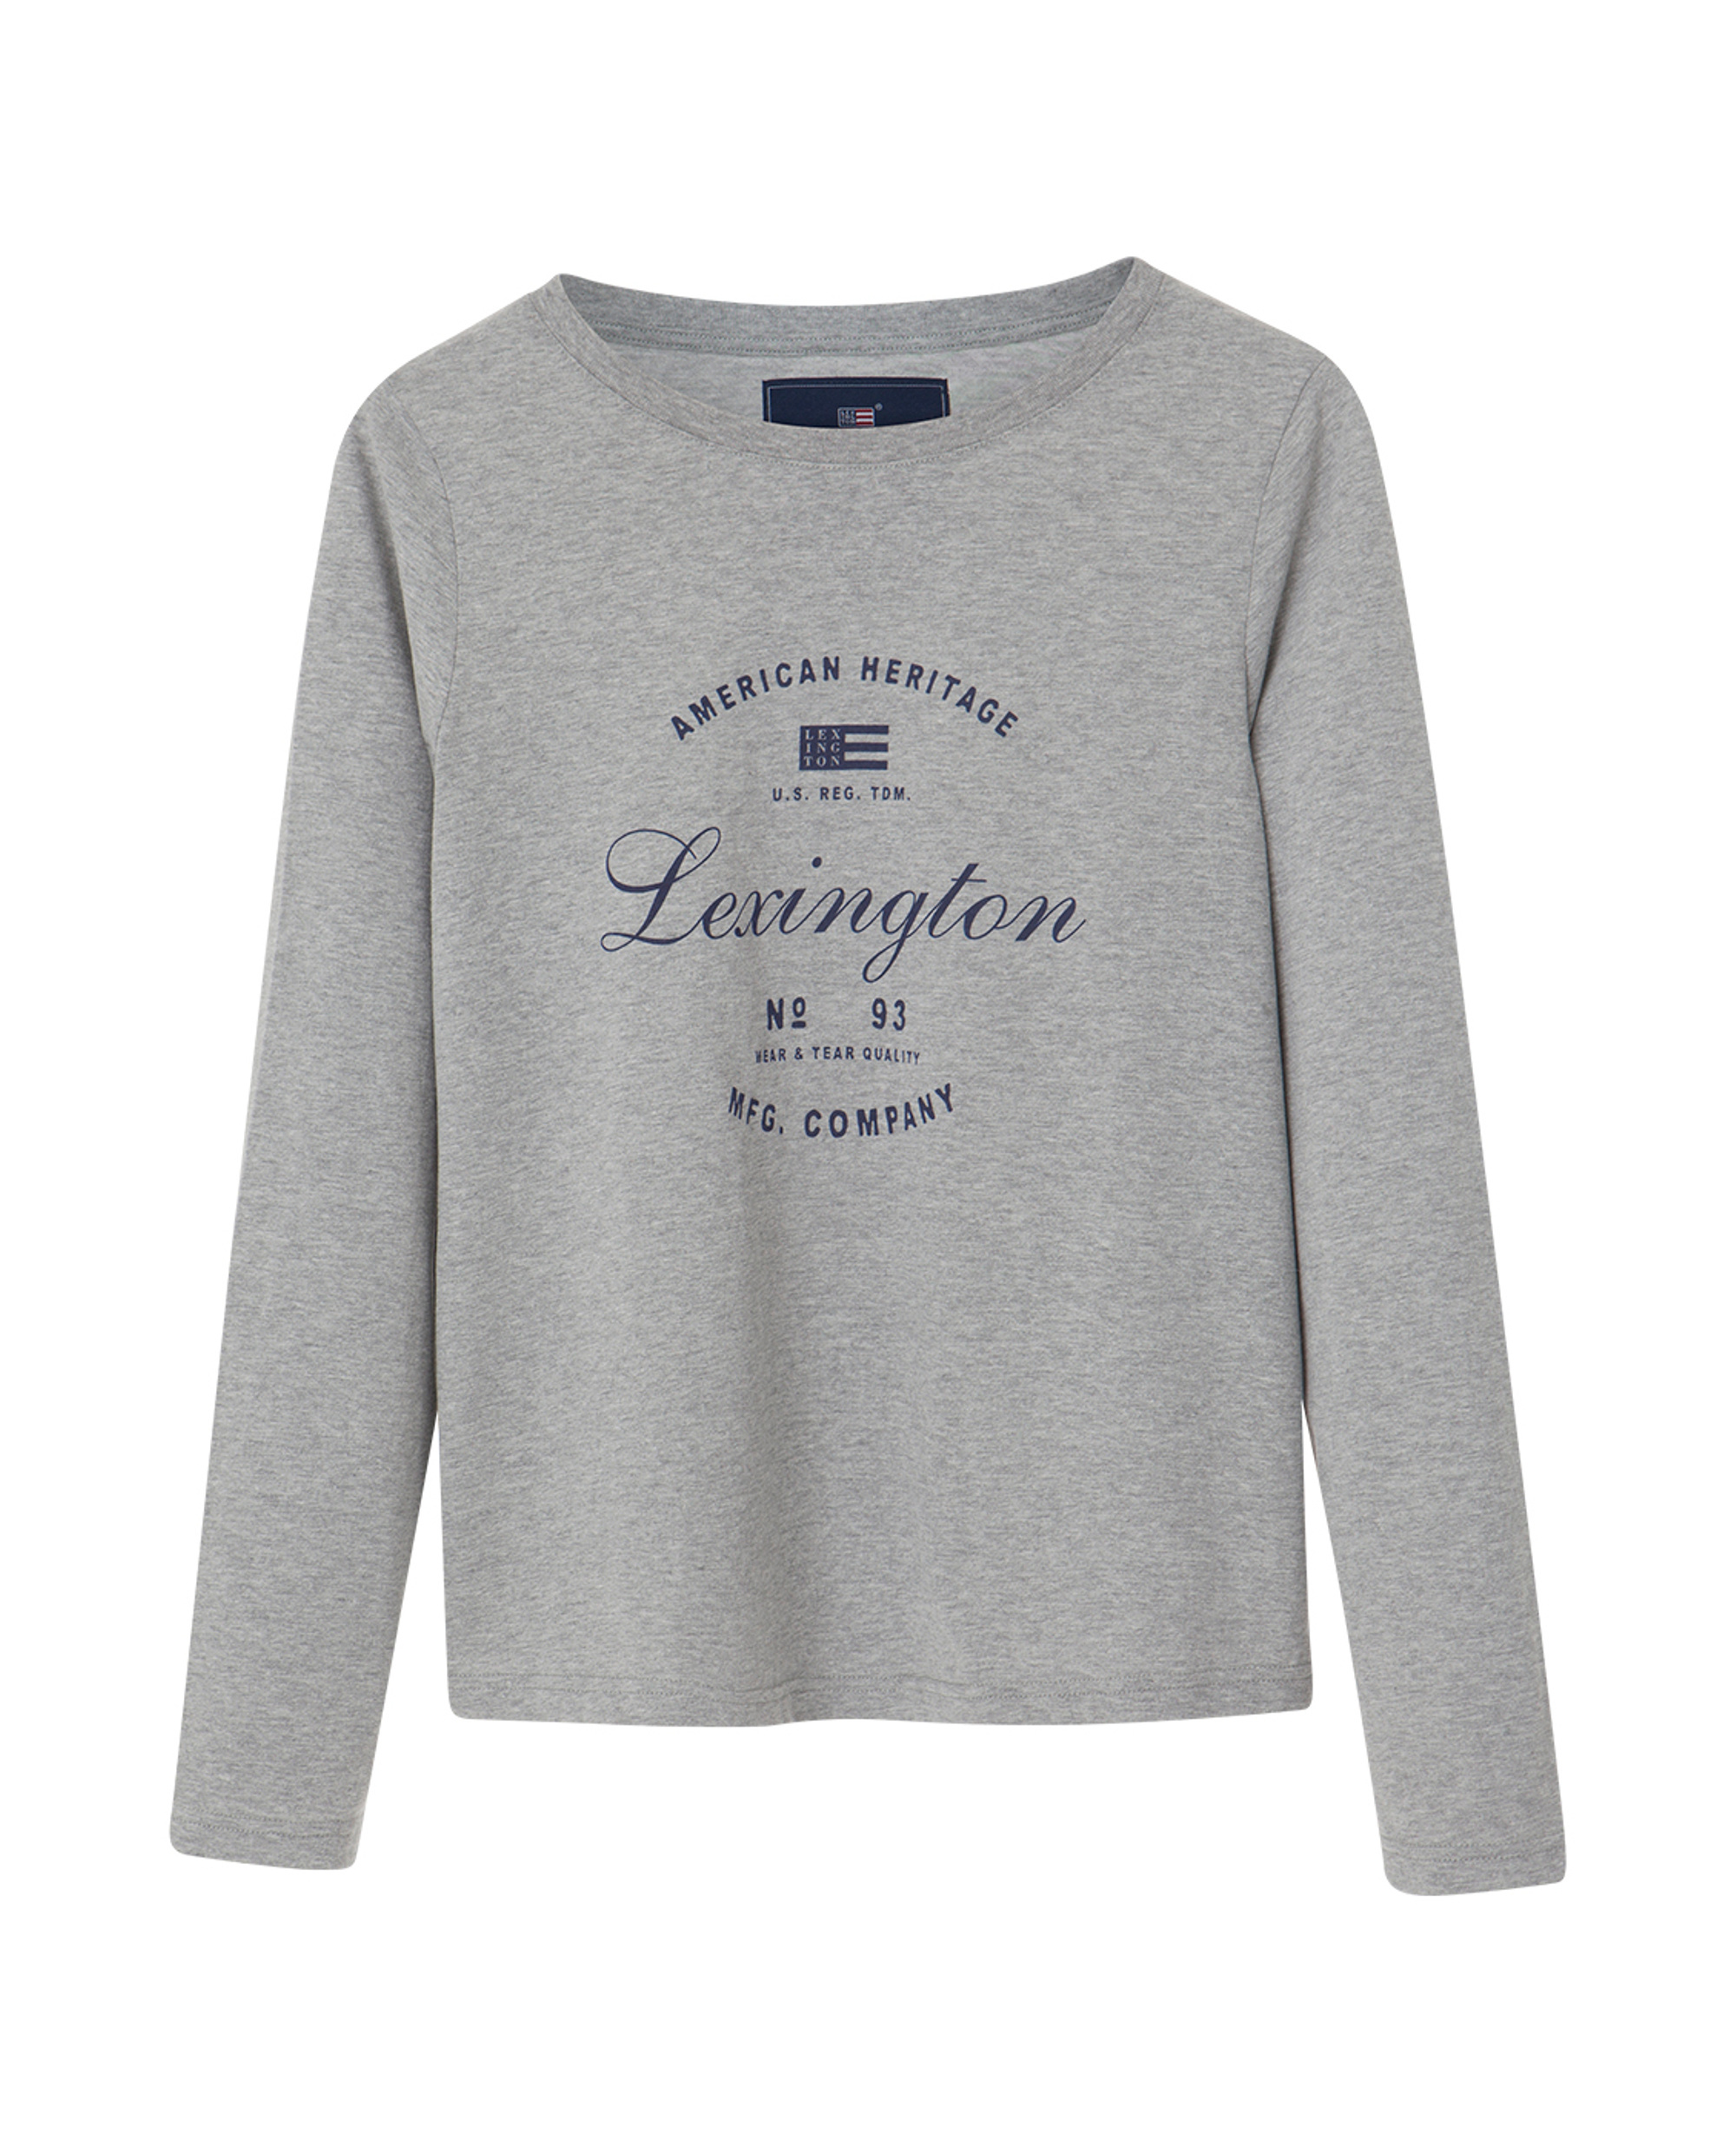 LEXINGTON Vicki Pajama Gray